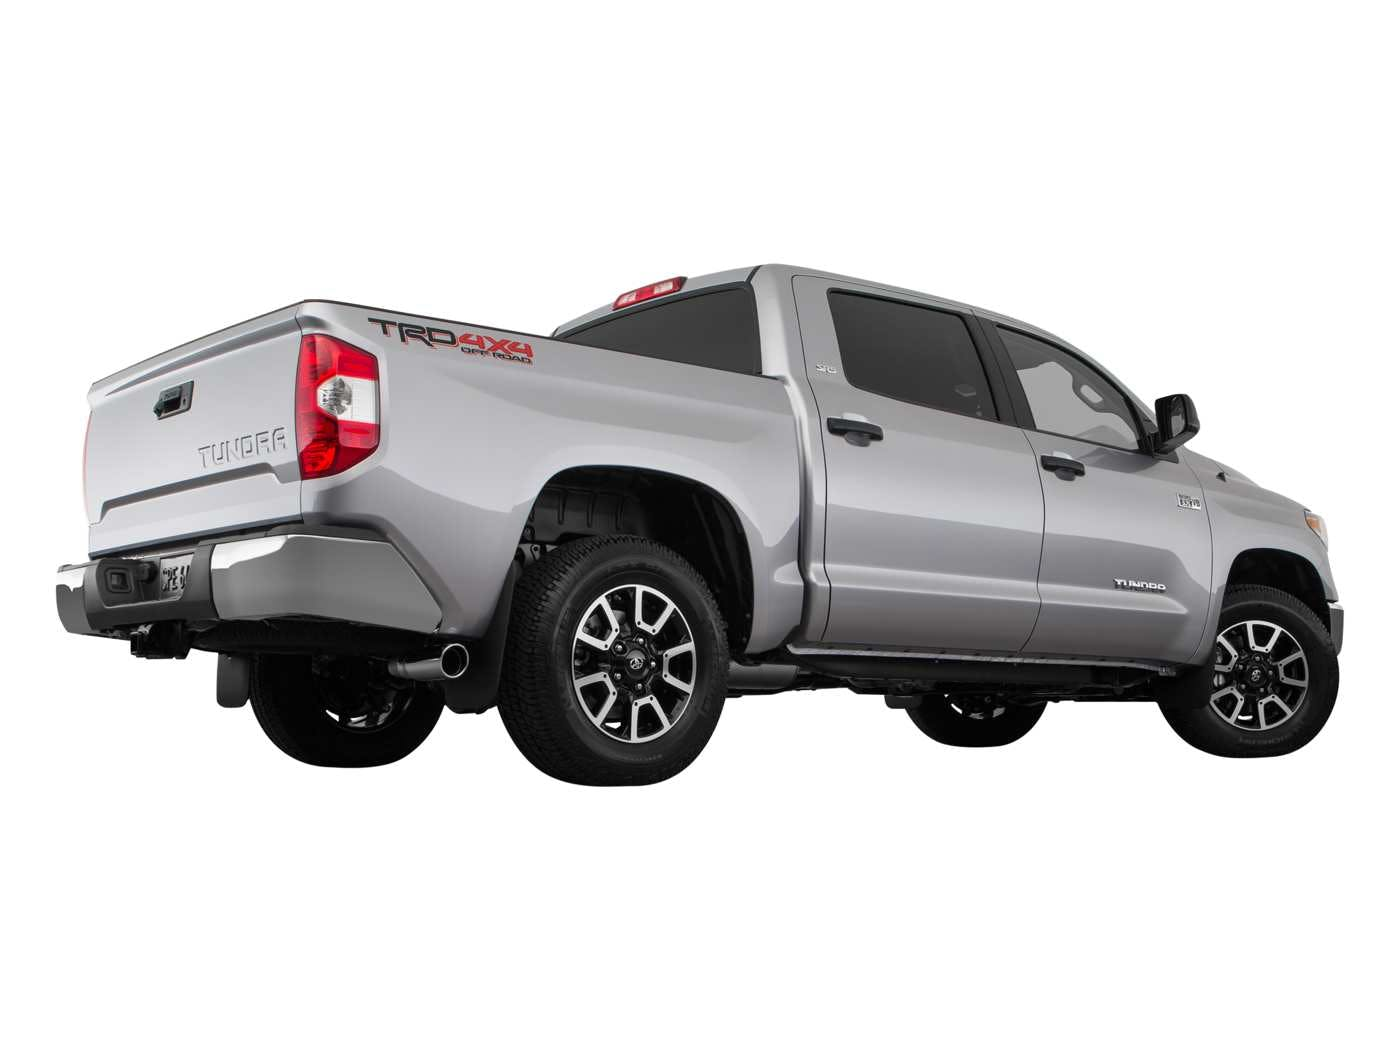 2019 Toyota Tundra Prices Incentives Dealers Truecar Wiring Harness 2015 Exterior Back Low Wide View 2